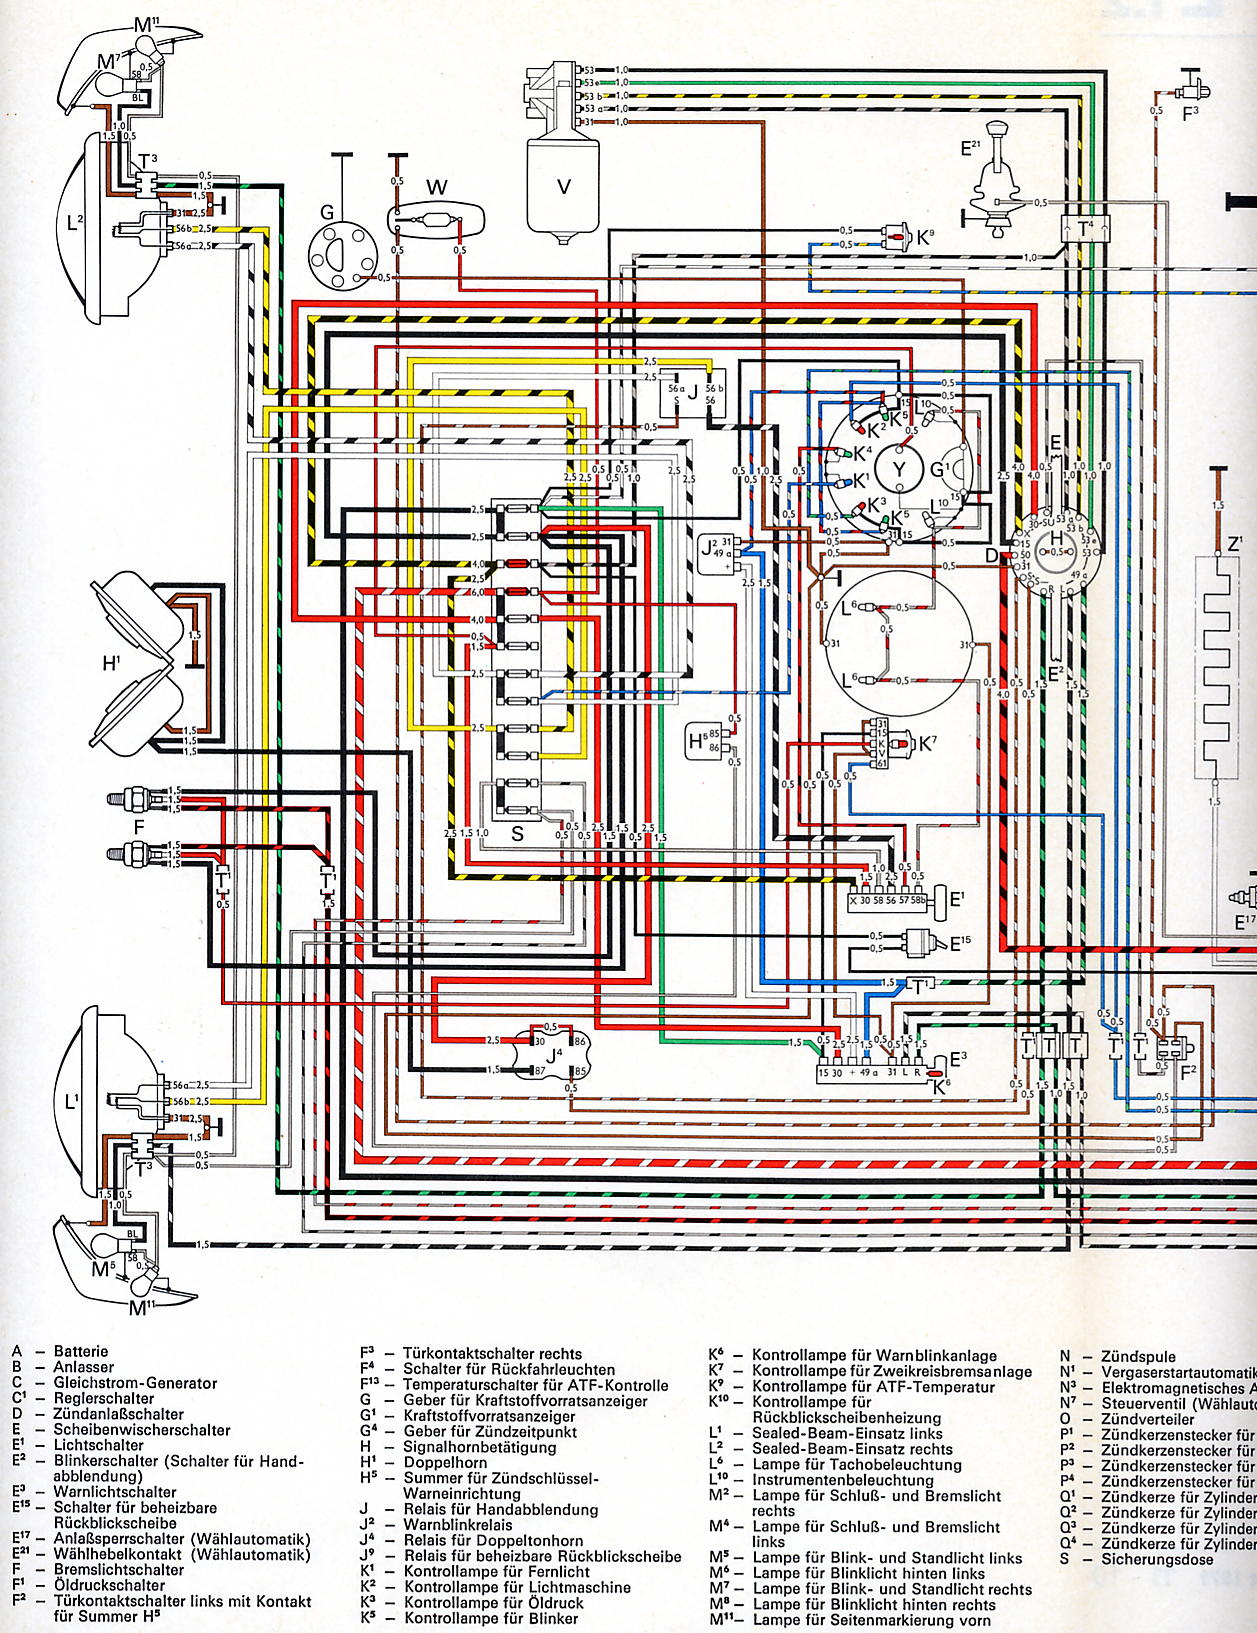 wiring diagram - shoptalkforums, Wiring diagram